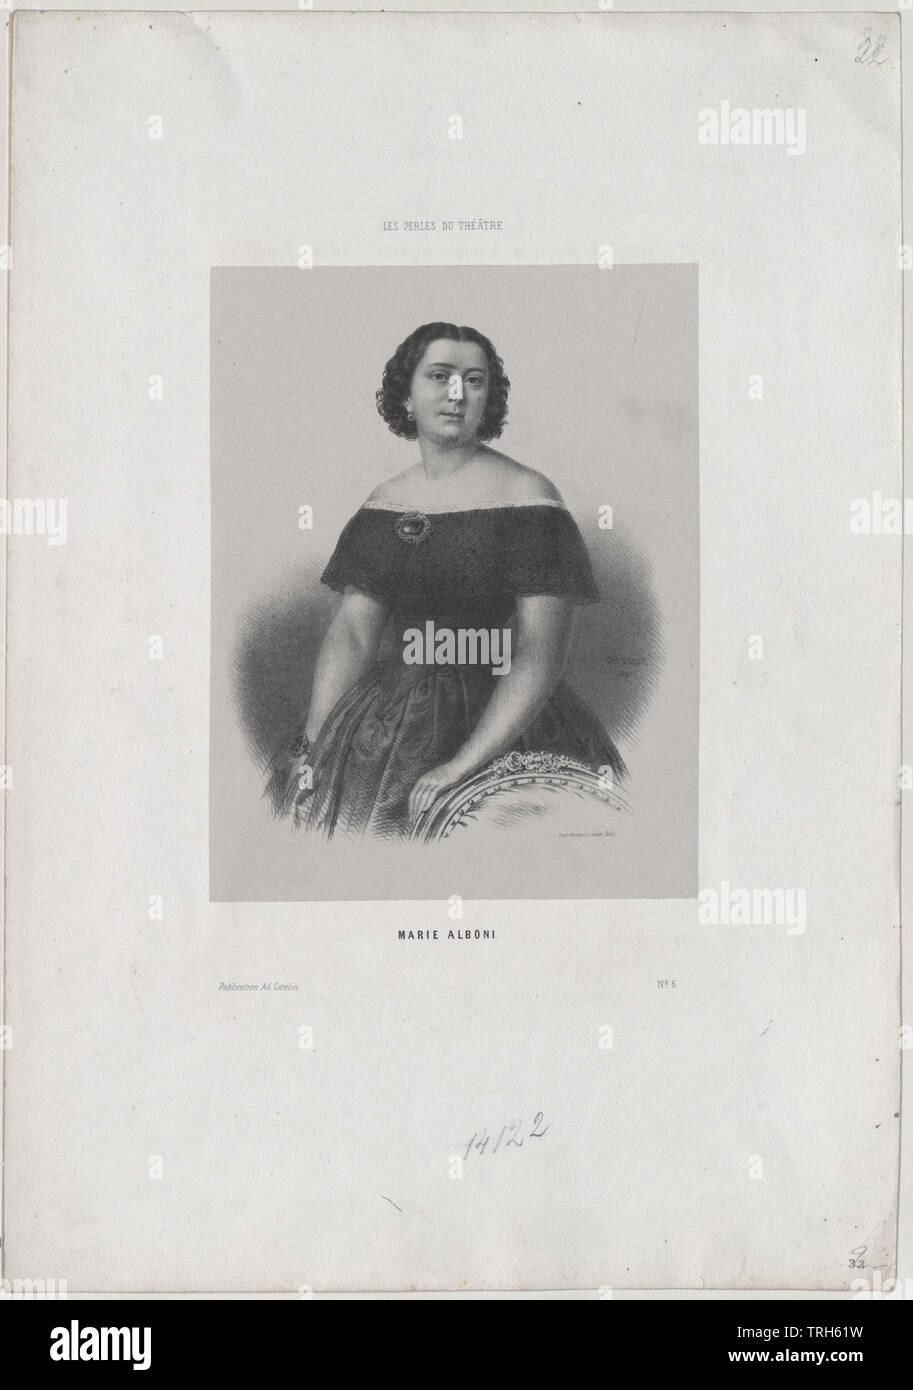 Alboni, Marietta, Italian opera singer (alto), member of the Viennese opera 1843-1845, if of the Parisian Italian opera,19th century, personality, celebrities, further, other, people, half-length, half length, woman, women, female, opera singer, opera singers, member, members, opera, operas, Additional-Rights-Clearance-Info-Not-Available - Stock Image